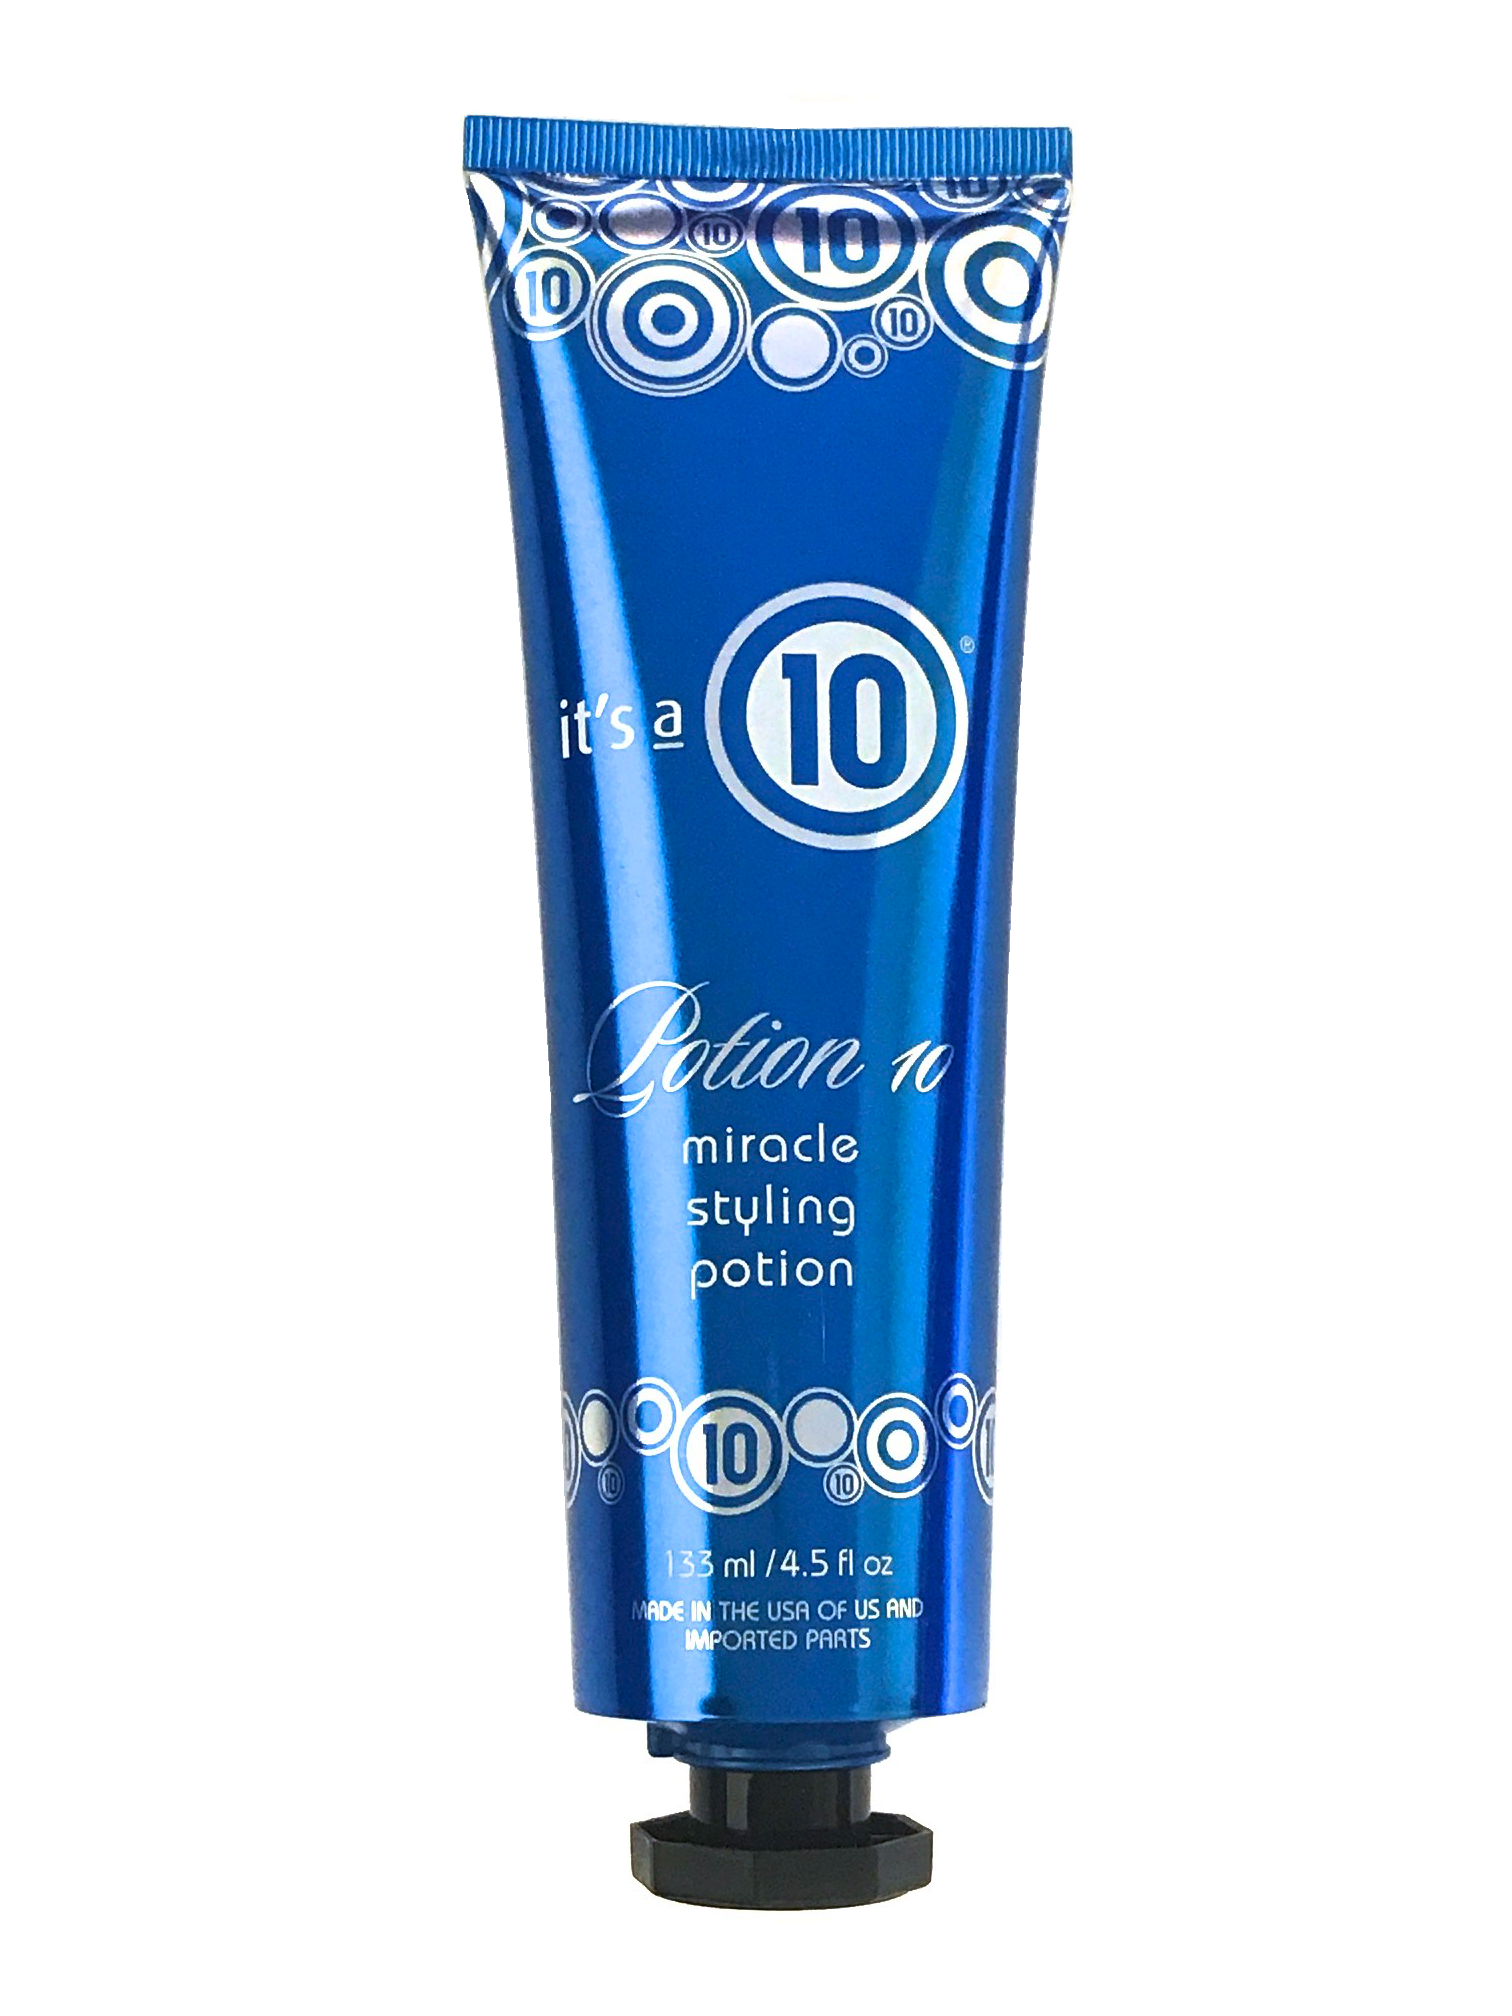 It's A 10 Potion 10 Miracle Styling Potion, 4.5 Fl Oz